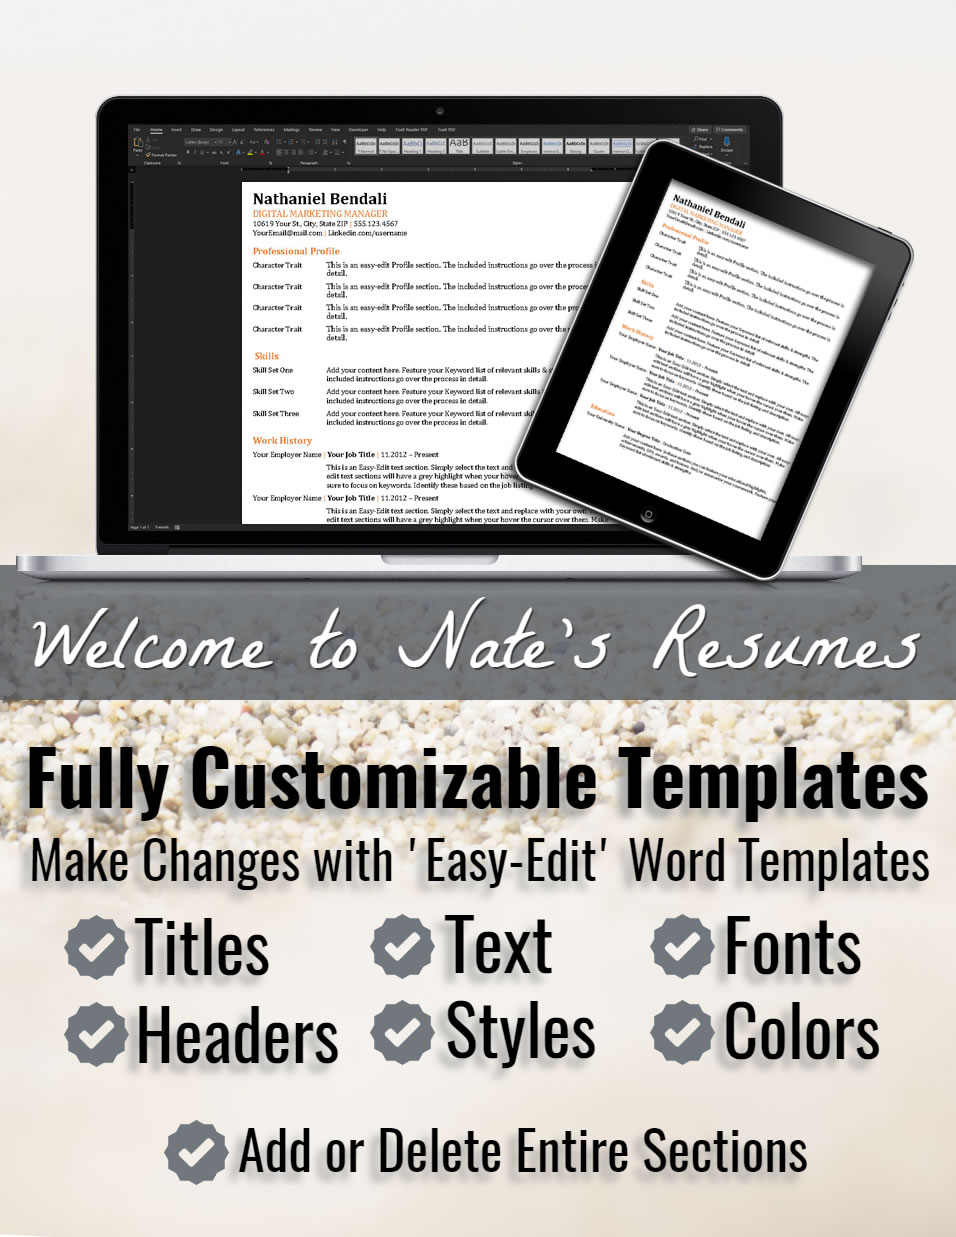 Optimized - Make-Easy-Edits-to-Templates-LONG